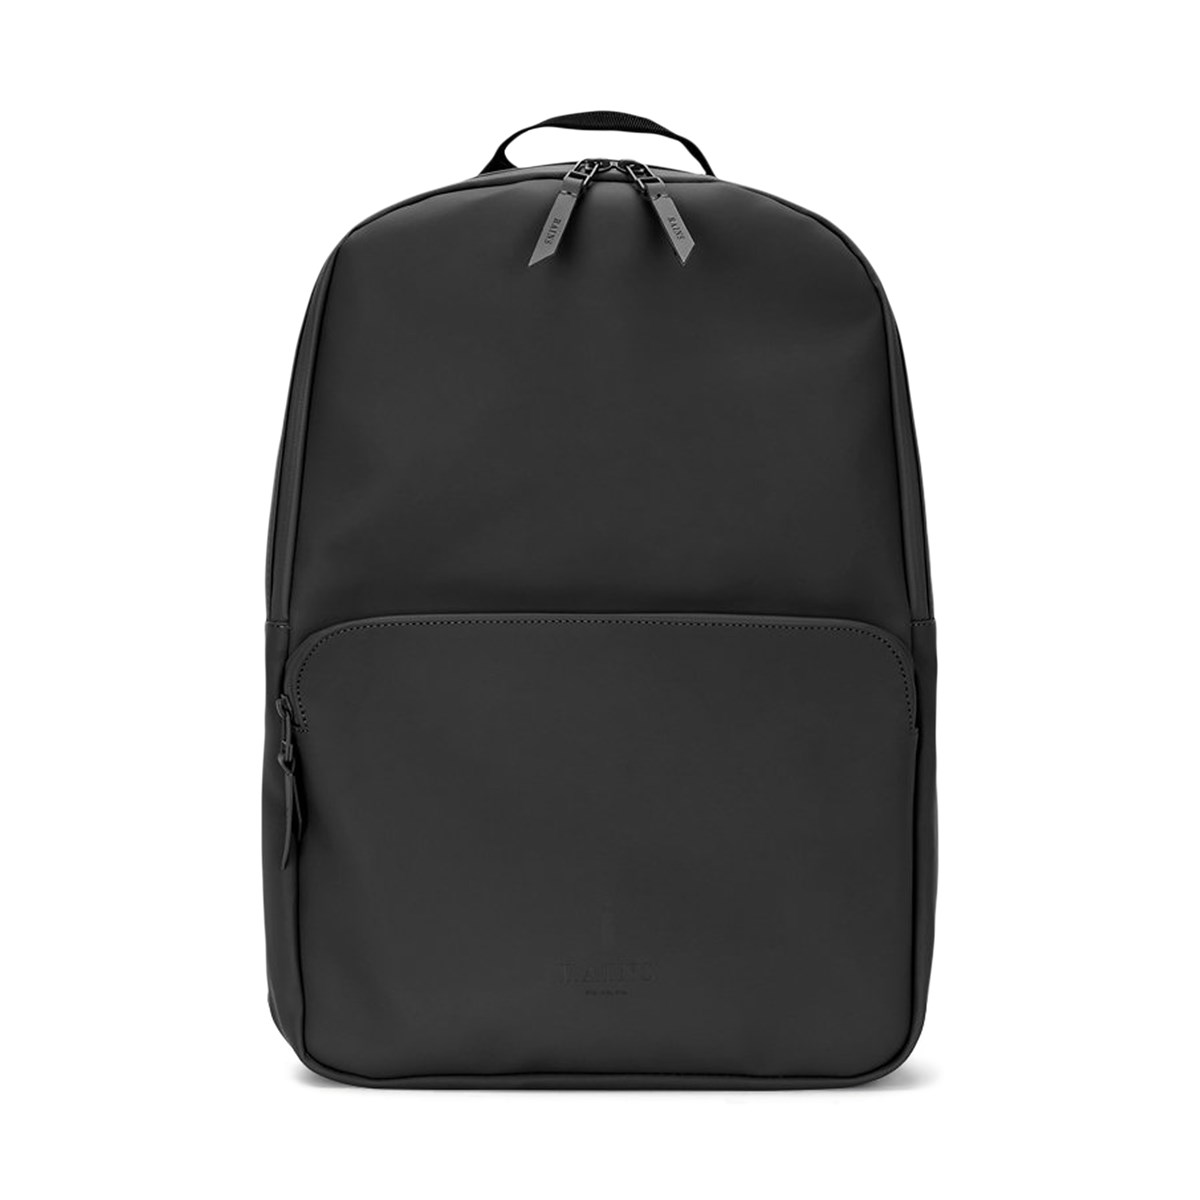 Field Backpack in Black